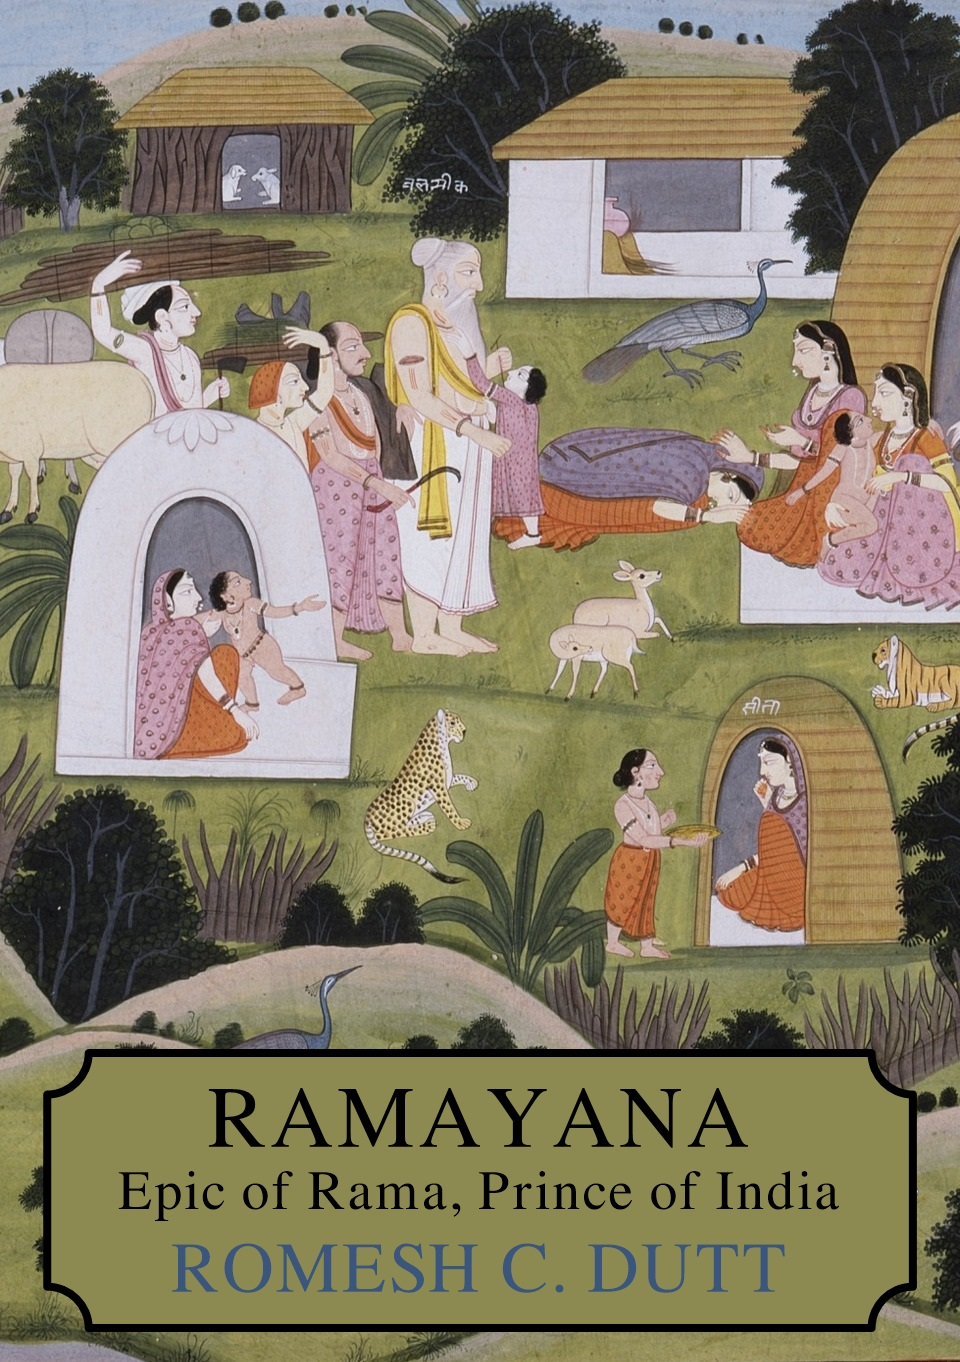 Ramayana, The Epic of Rama, Prince of India